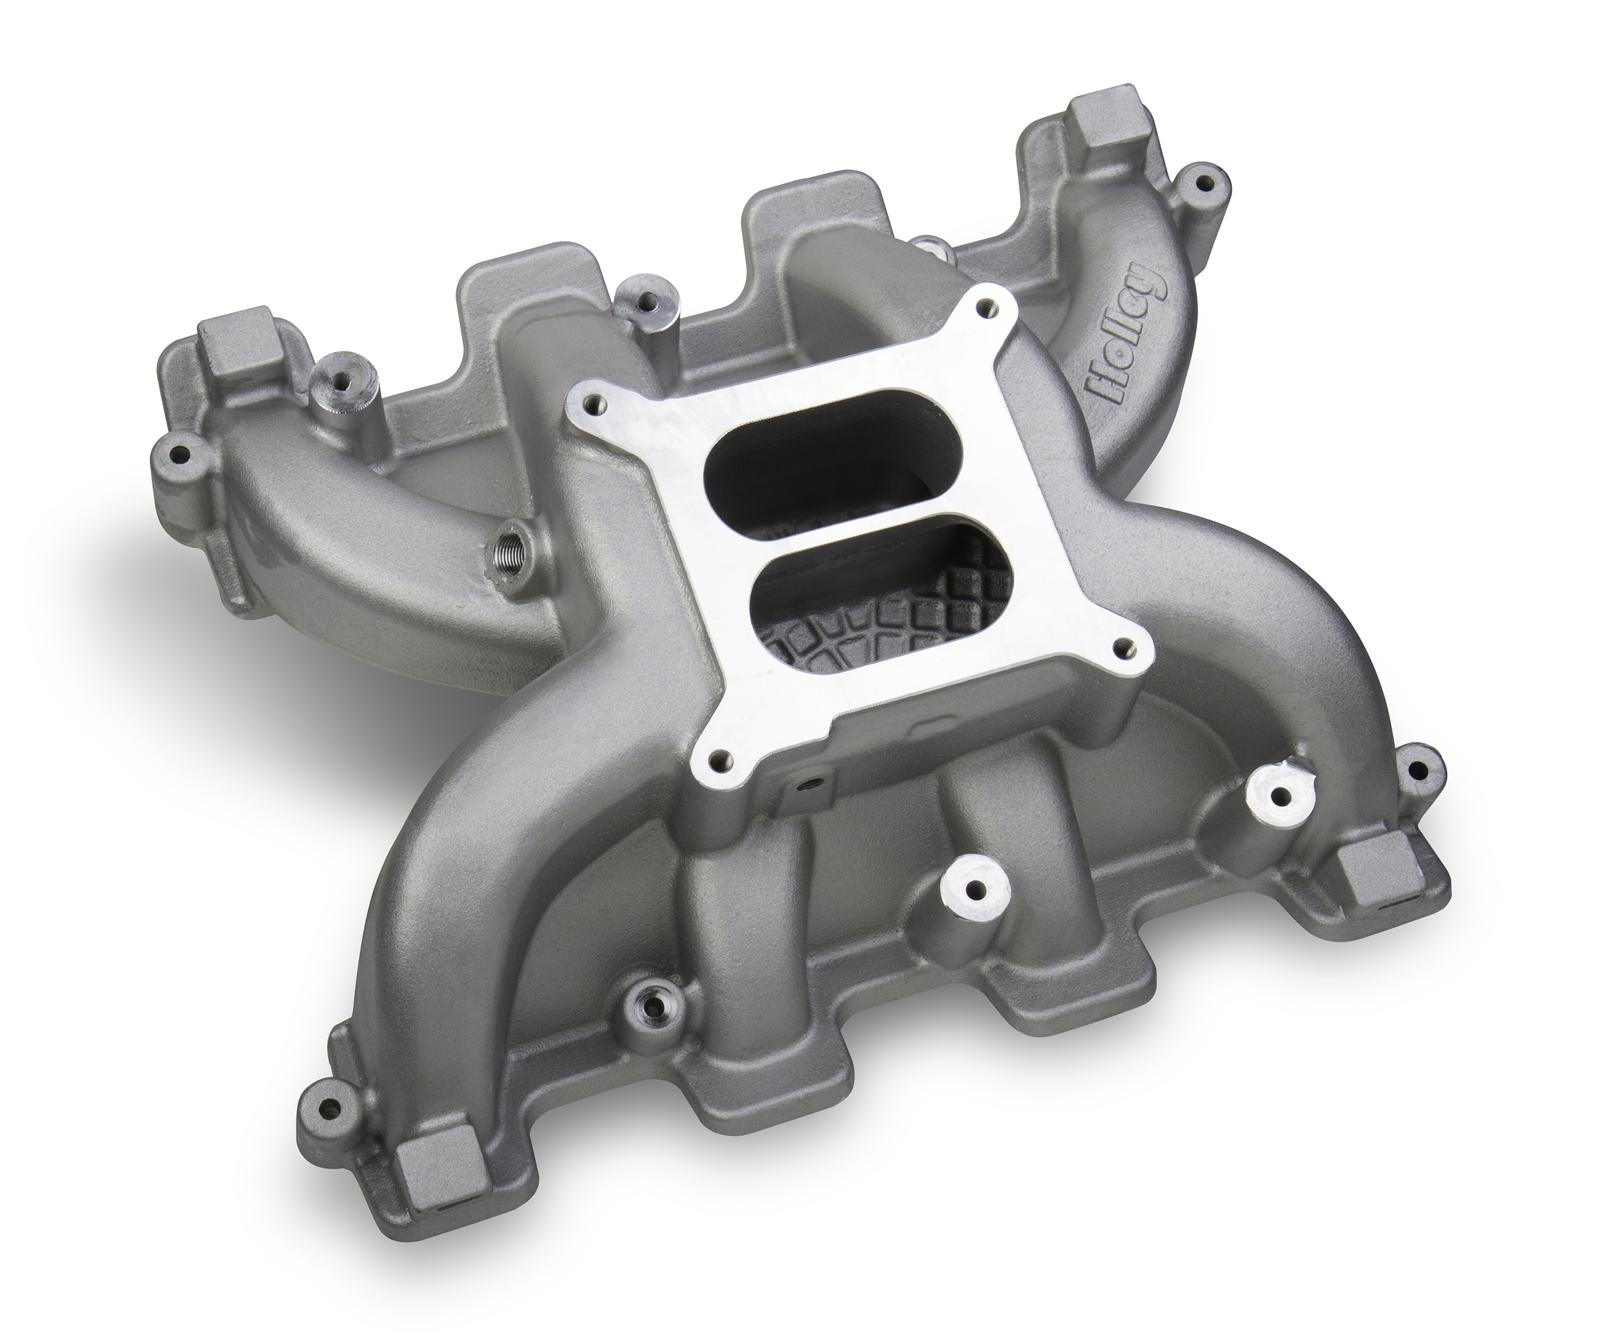 LS1/LS2/LS6 Holley Dual Plane Mid Rise Single Carb Intake Manifold